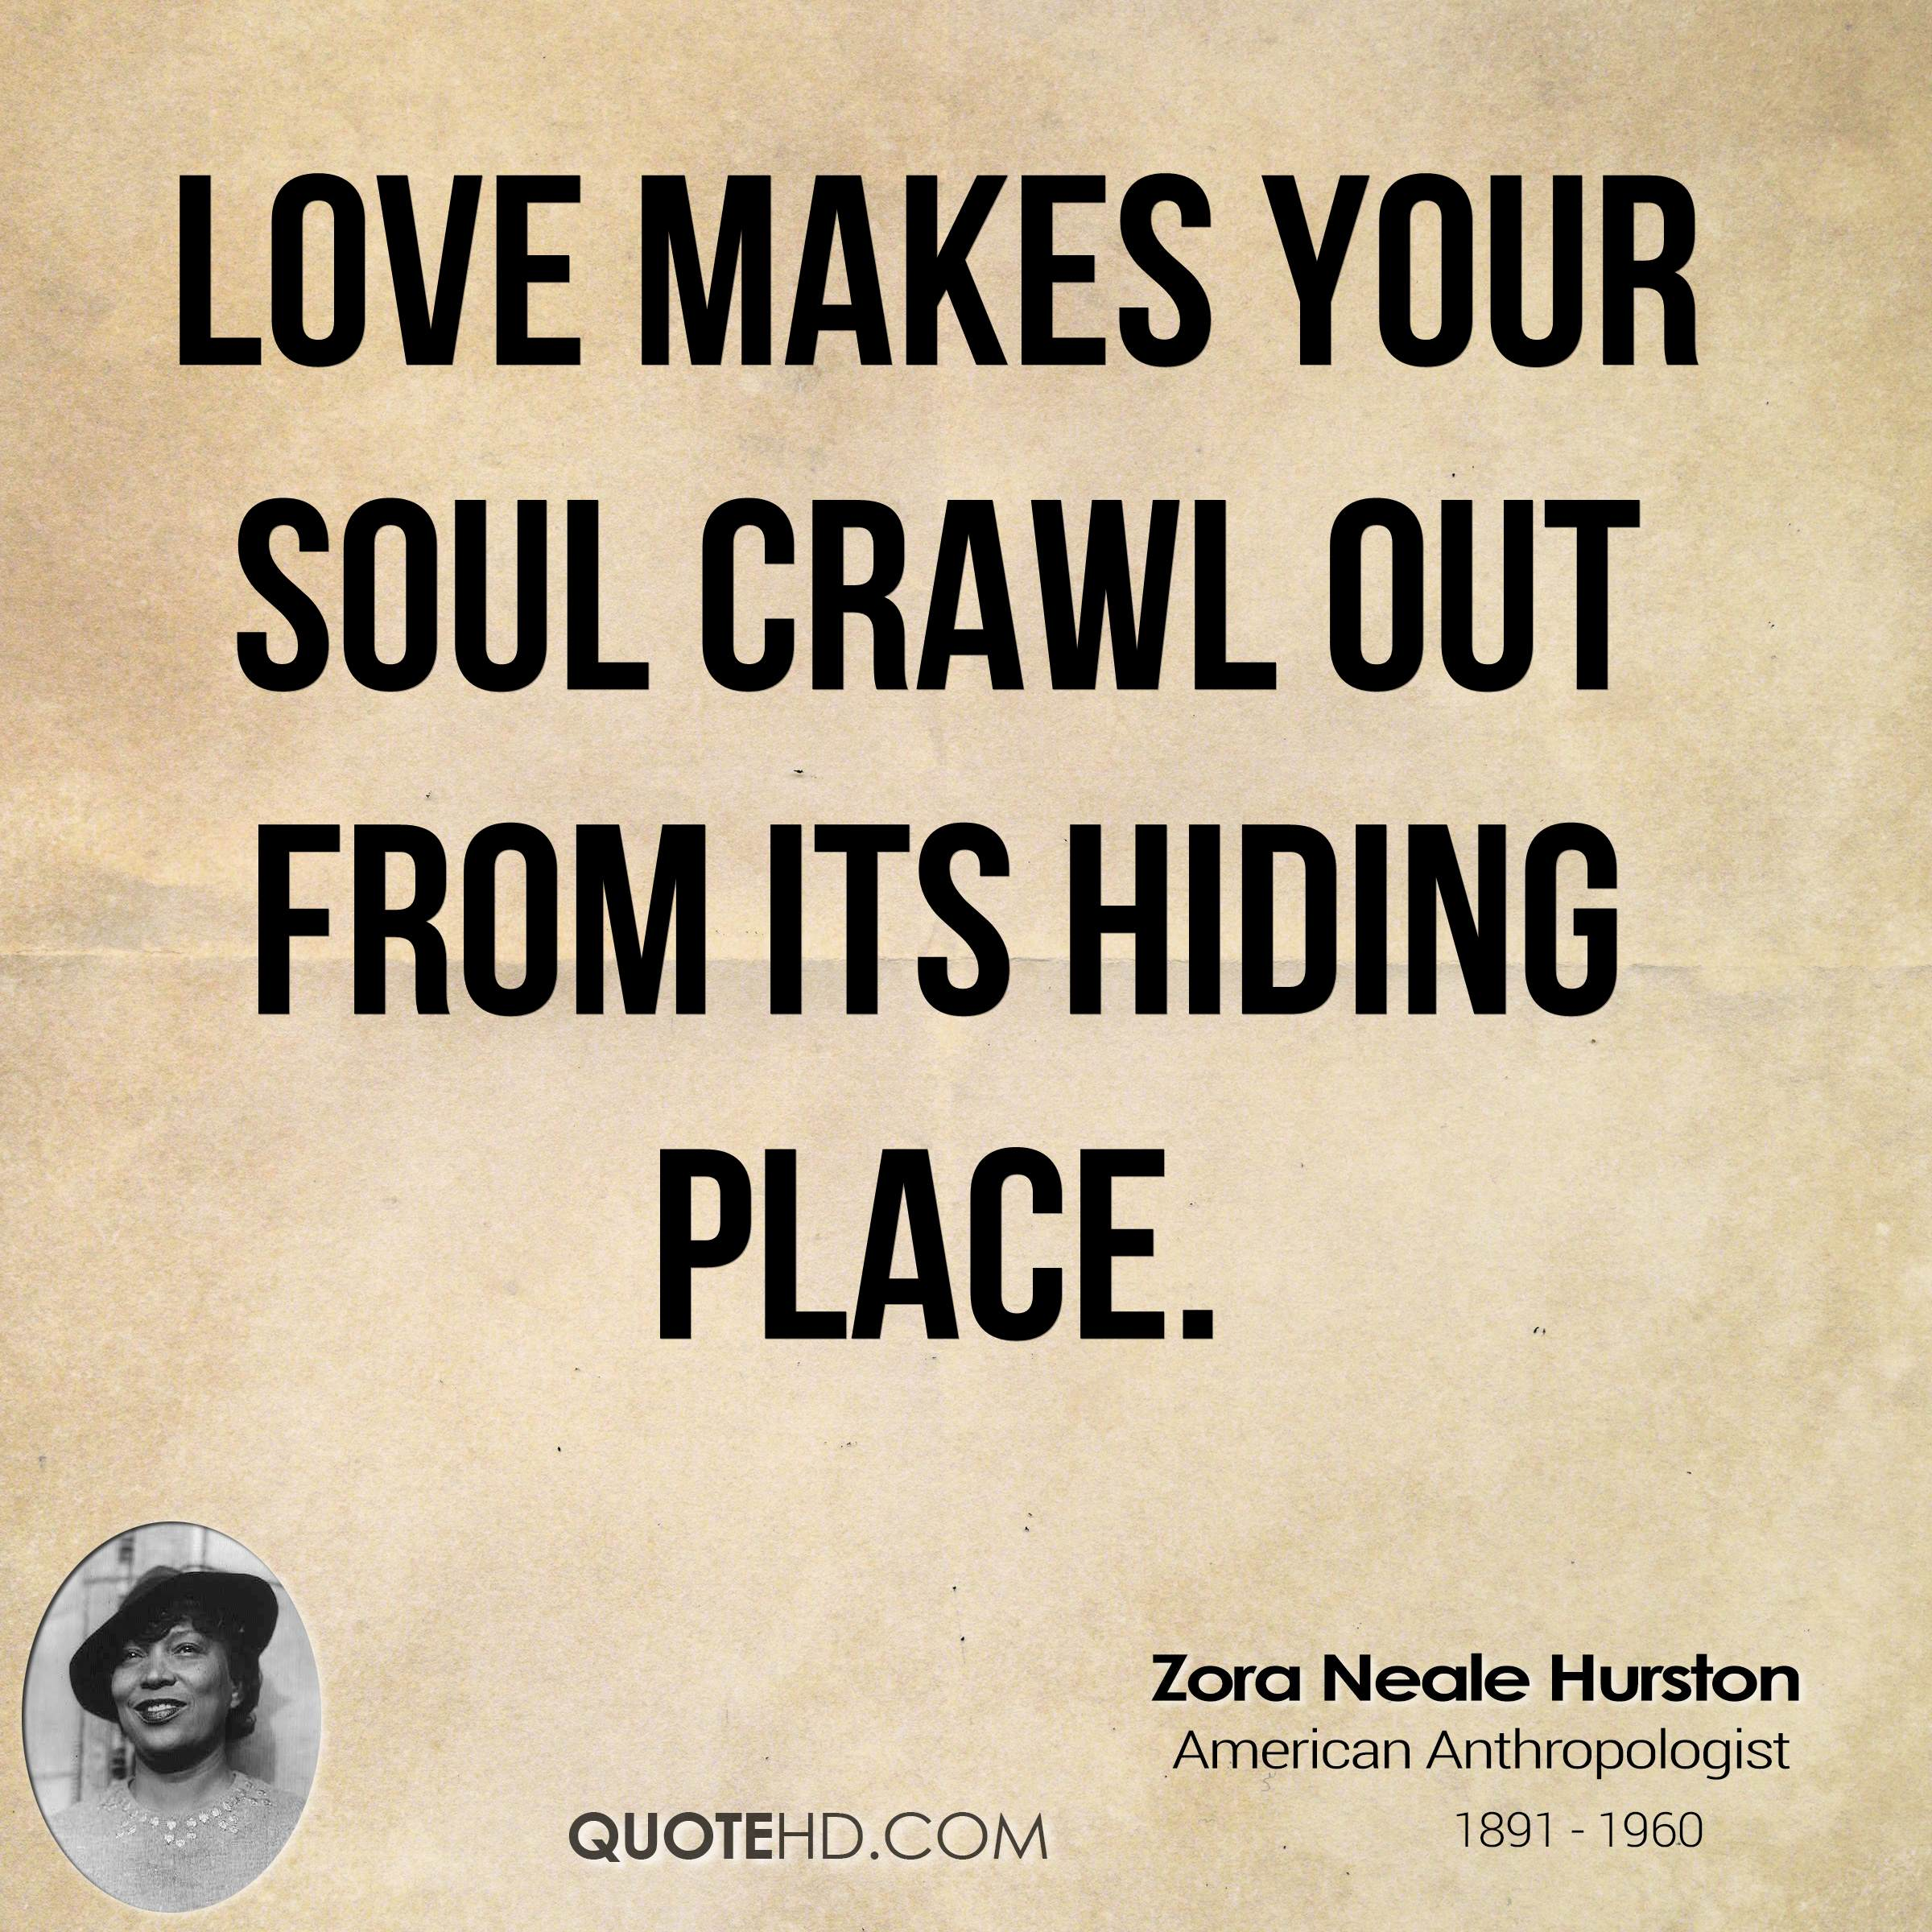 Quotes About Love By Zora Neale Hurston : Zora Neale Hurston Love Quotes QuoteHD